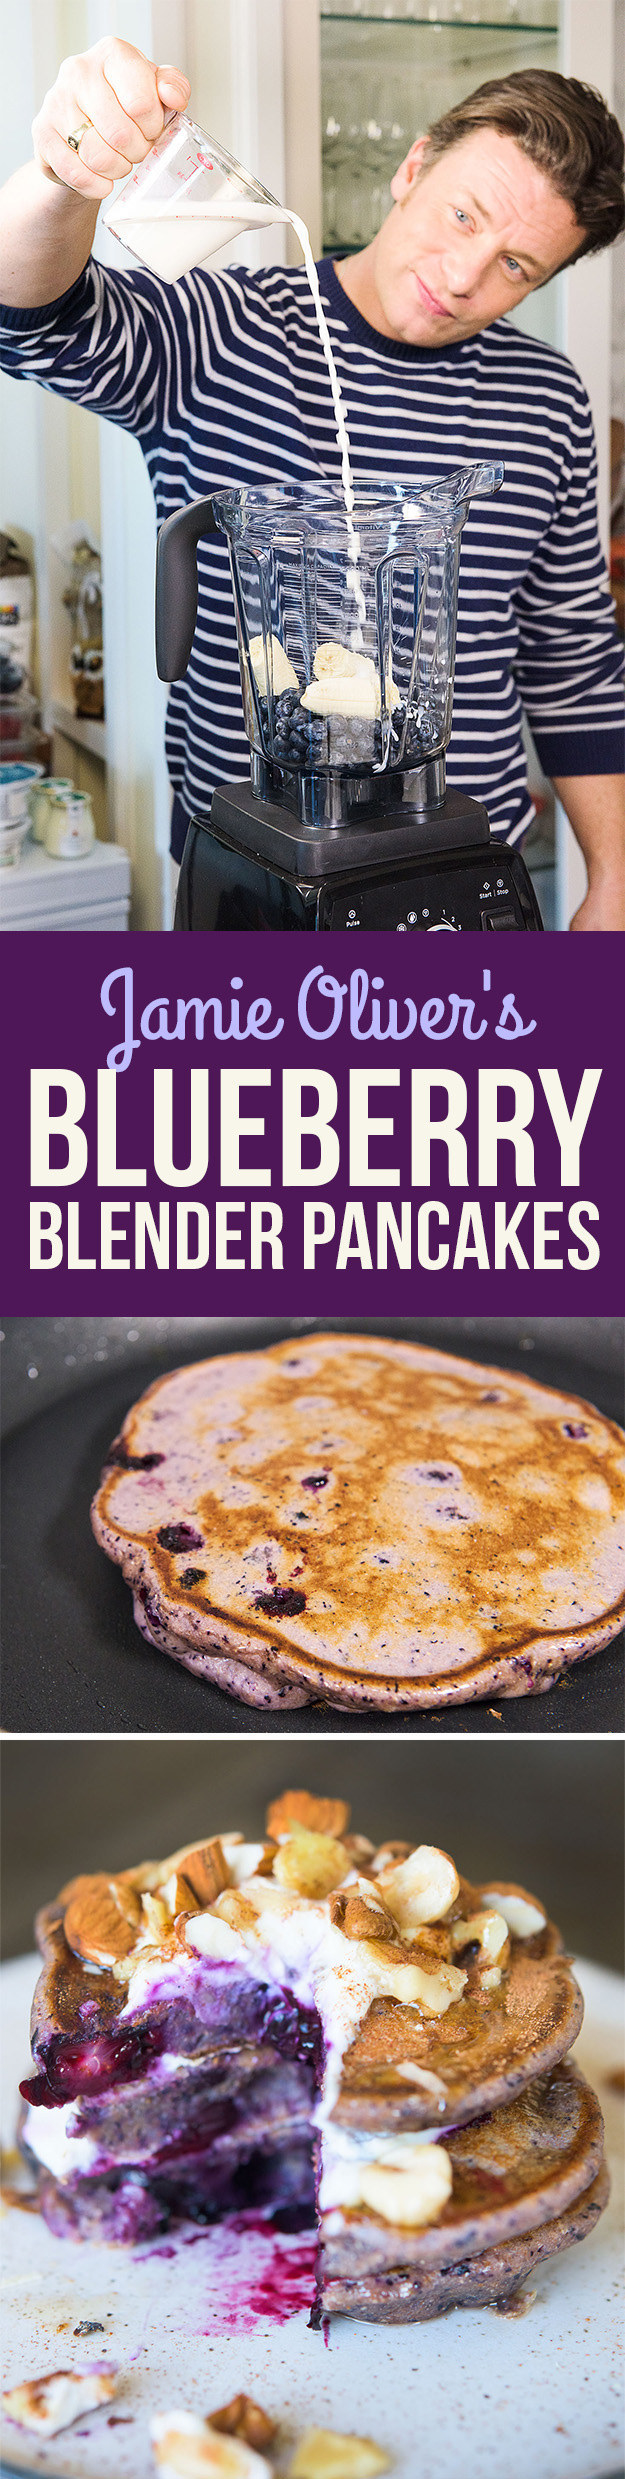 Heres How Jamie Oliver Turns A Healthy Smoothie Into Pancakes